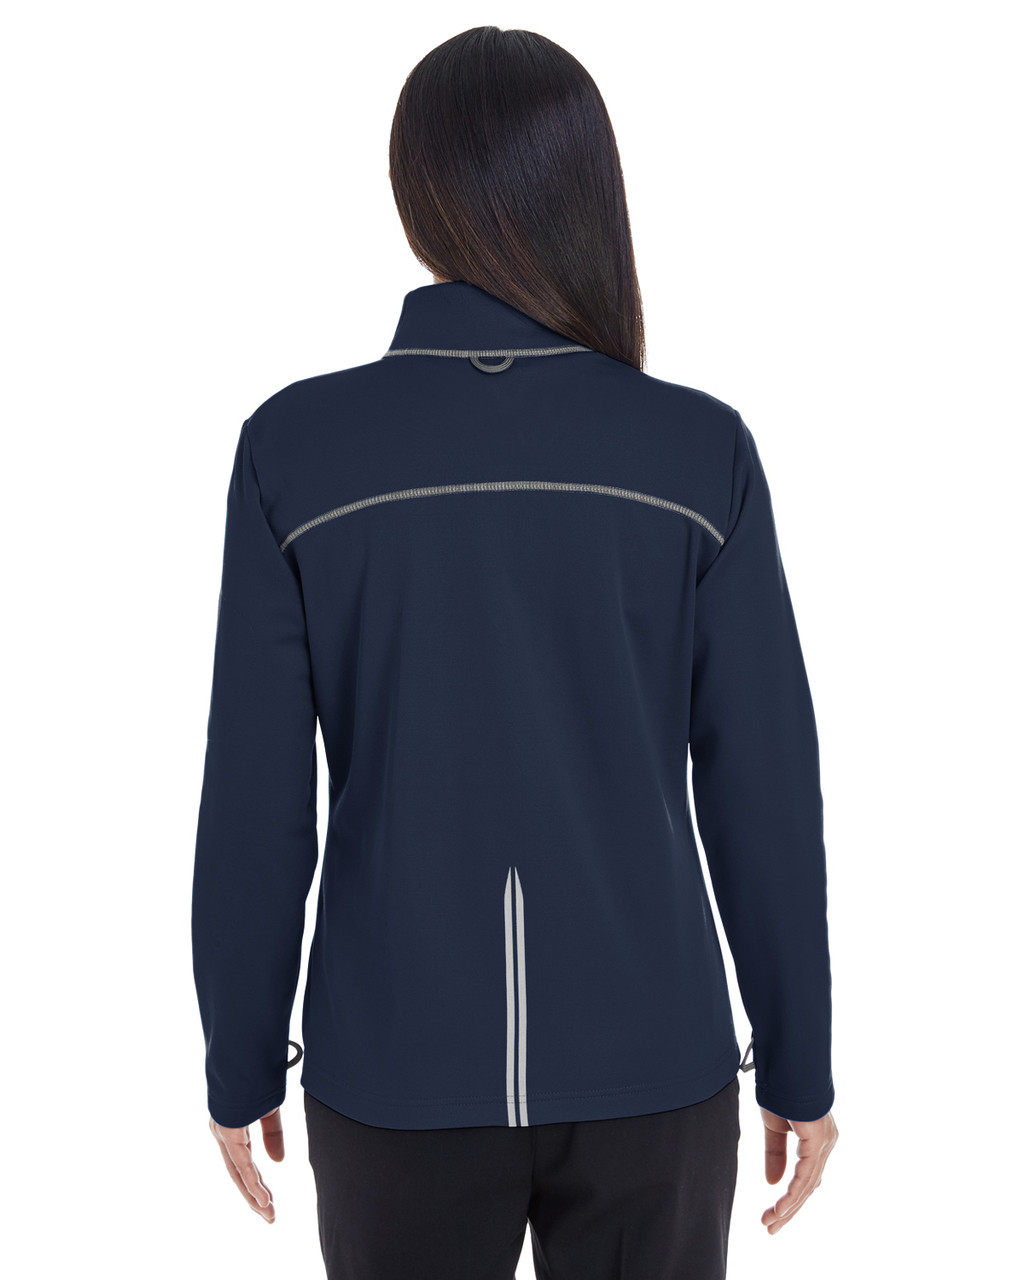 Navy/Grey/Navy Blue - BACK - NE703W Ash City - North End Ladies' Endeavor Interactive Performance Fleece Jacket | Blankclothing.ca